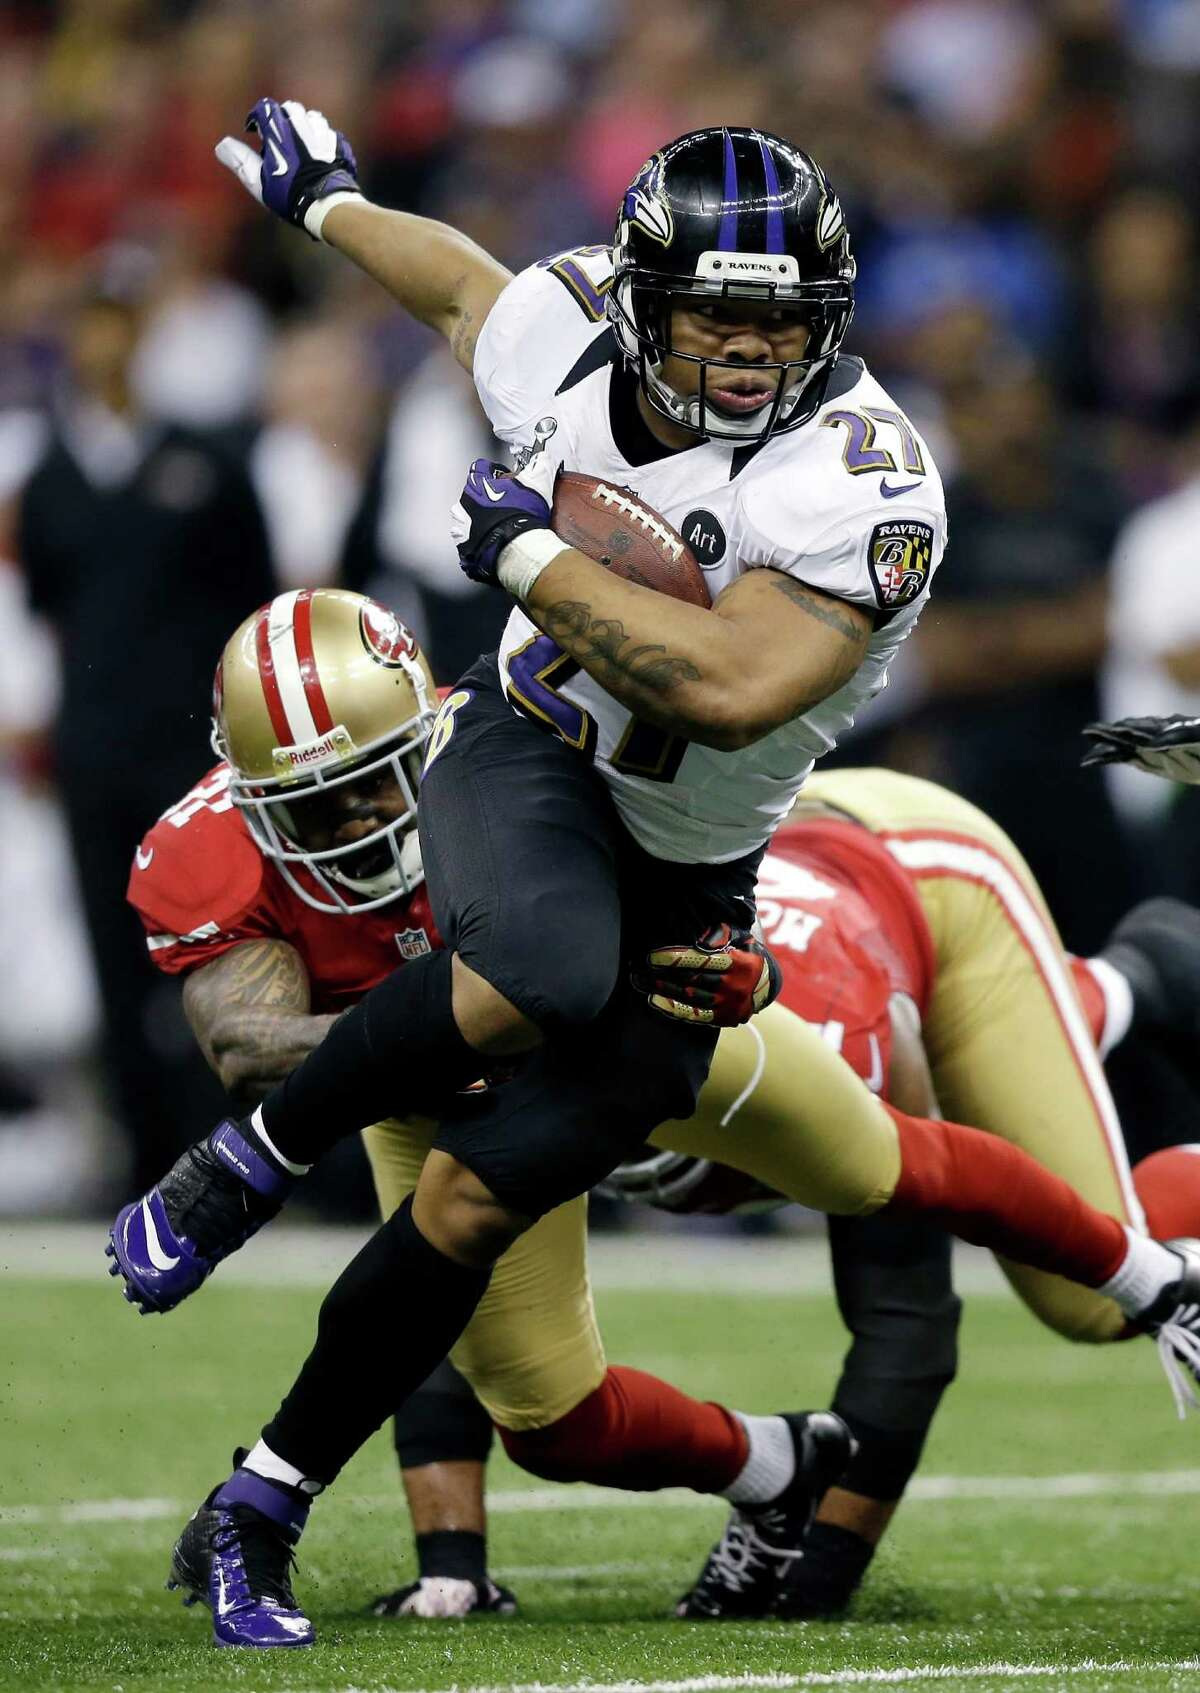 In this Feb. 3, 2013, file photo, Baltimore Ravens running back Ray Rice (27) rushes away from San Francisco 49ers defensive end Ray McDonald (91) during the first half of the NFL Super Bowl XLVII football game in New Orleans. It's an NFL fact of life: If a player has talent, a team can find a place for him, no matter how bad his off-the-field profile. Ray Rice is testing that maxim, as much for his deed as the fact that it's documented on video. He's suspended now, but can he rehab his image enough to come back on the field?